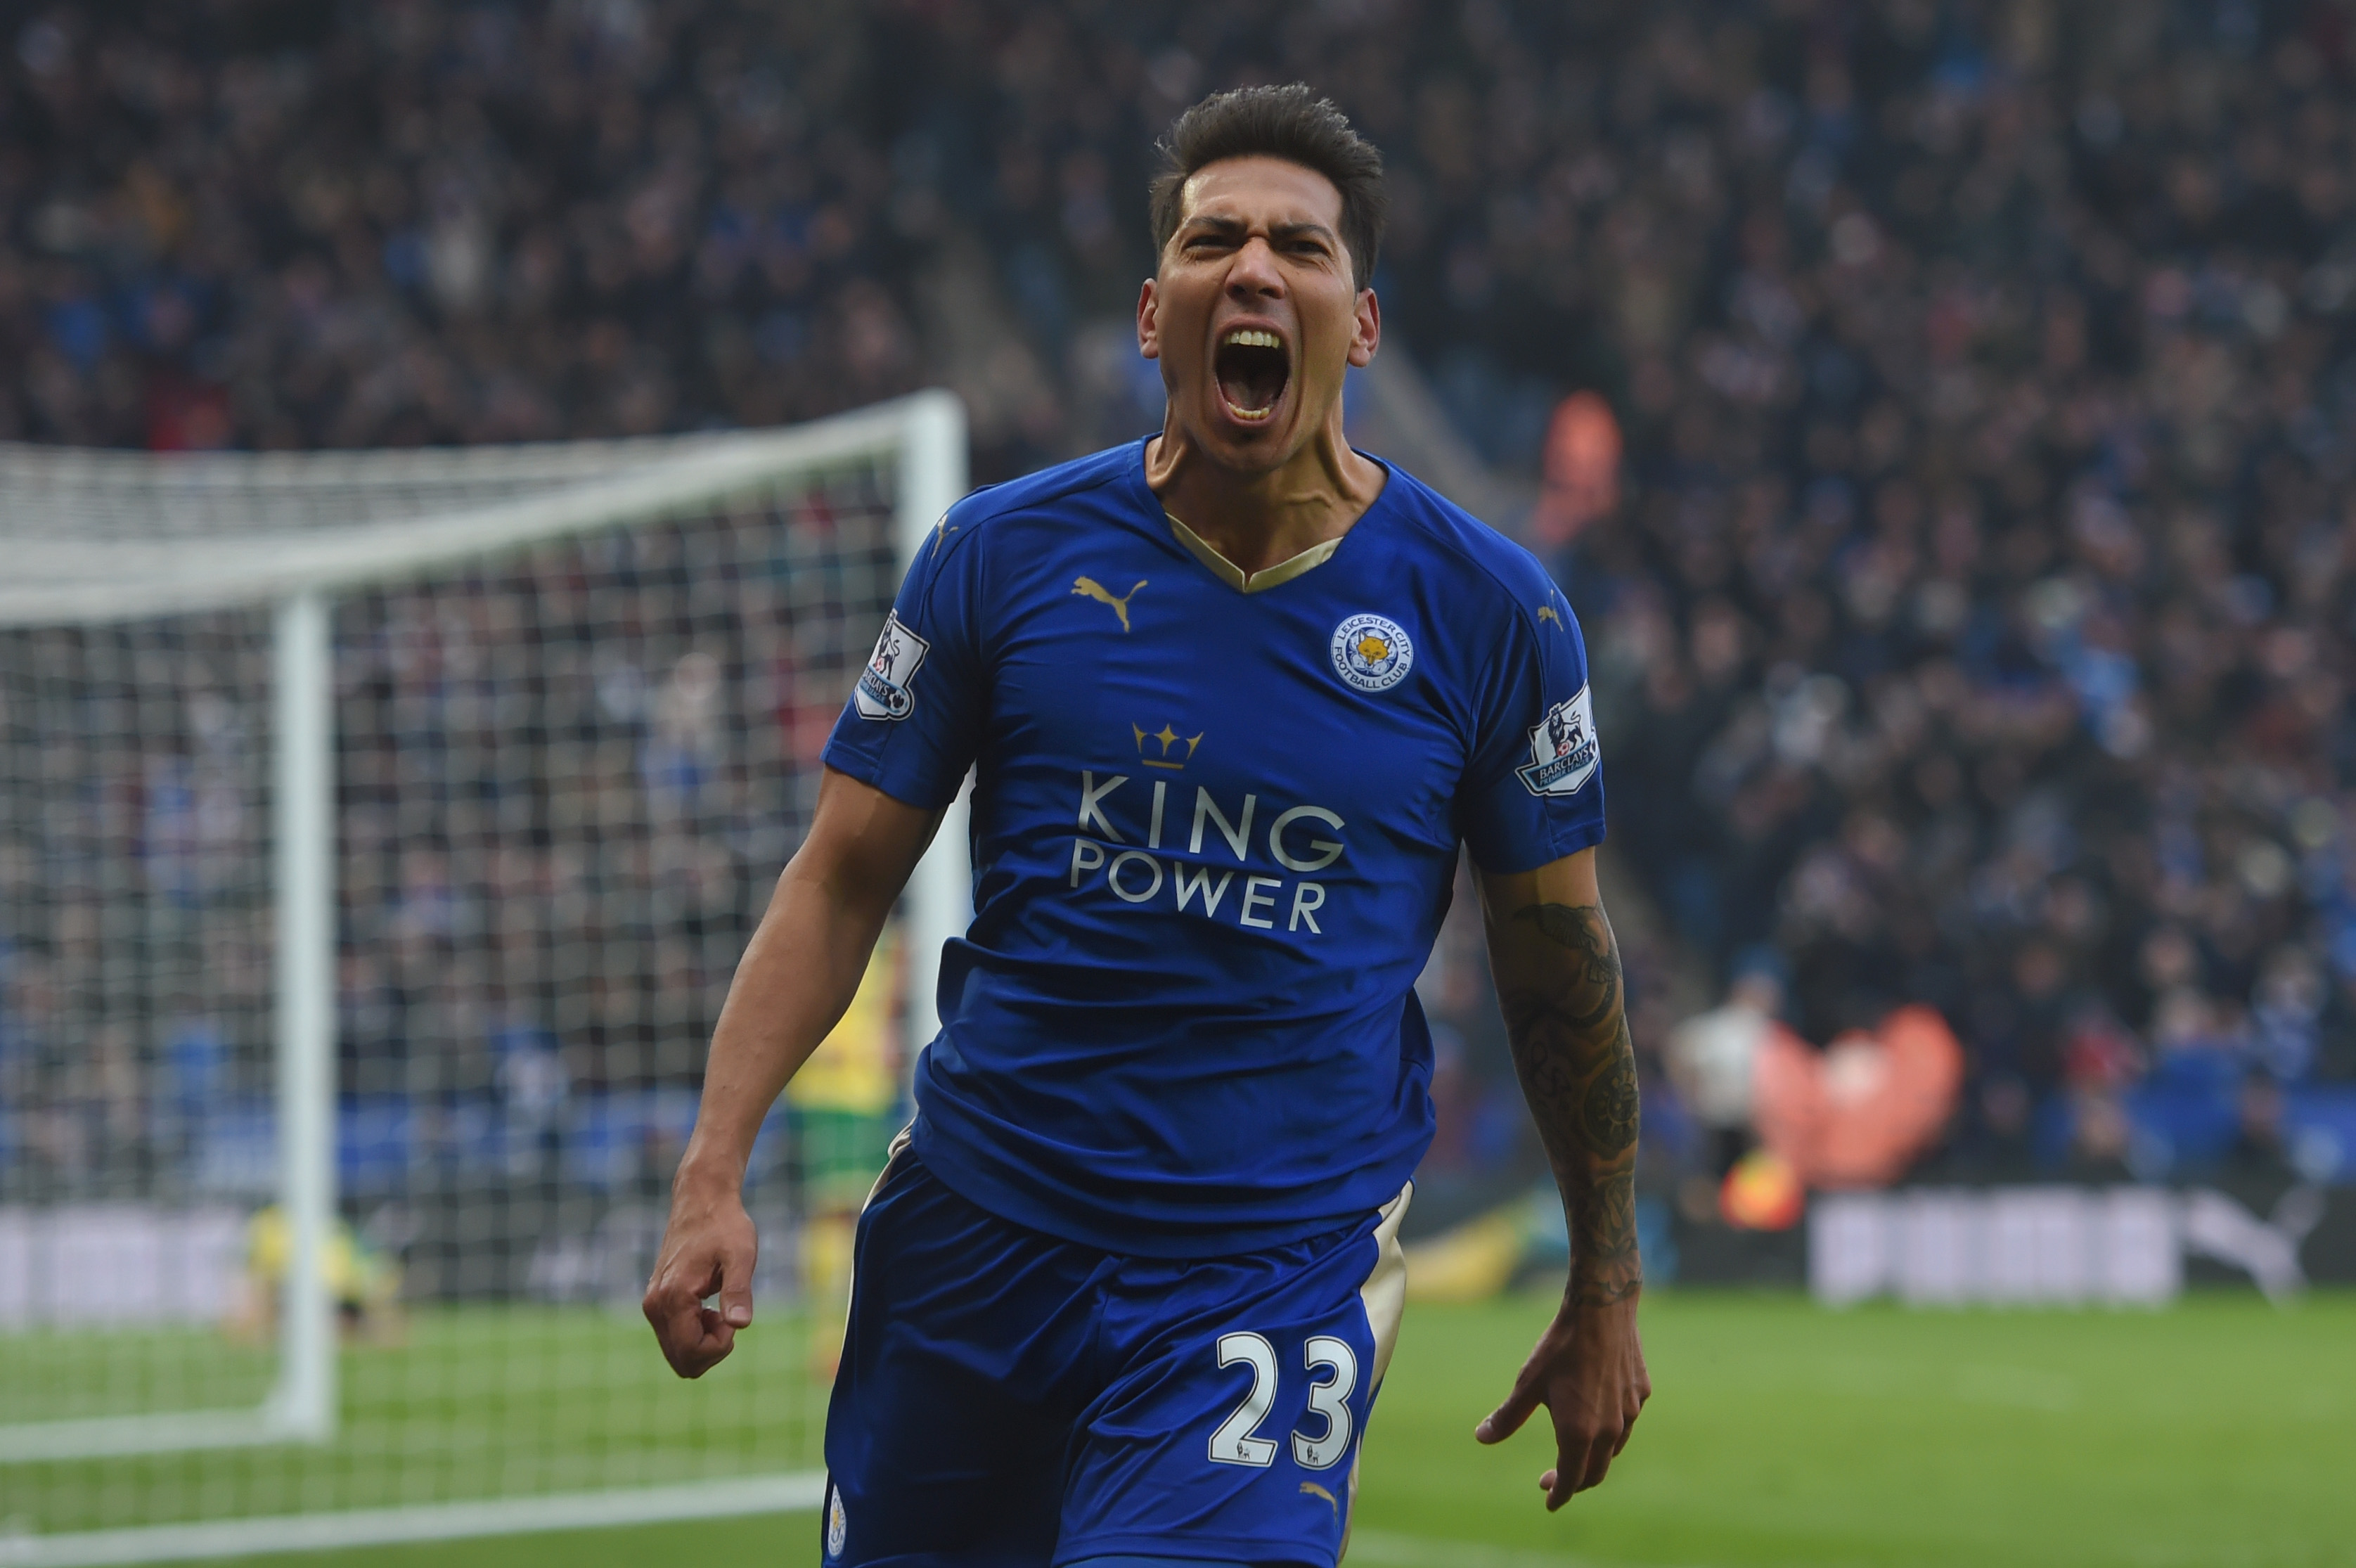 Leicester live stream, West Brom live stream, West Brom Leicester live stream, how to watch West Brom Leicester, watch West Brom Leicester mobile  stream, streaming, live, online, mobile, app, tablet, WBA, nbc sports, nbc live, nbc extra, chelsea stream, Leicester vs. WBA Live Stream